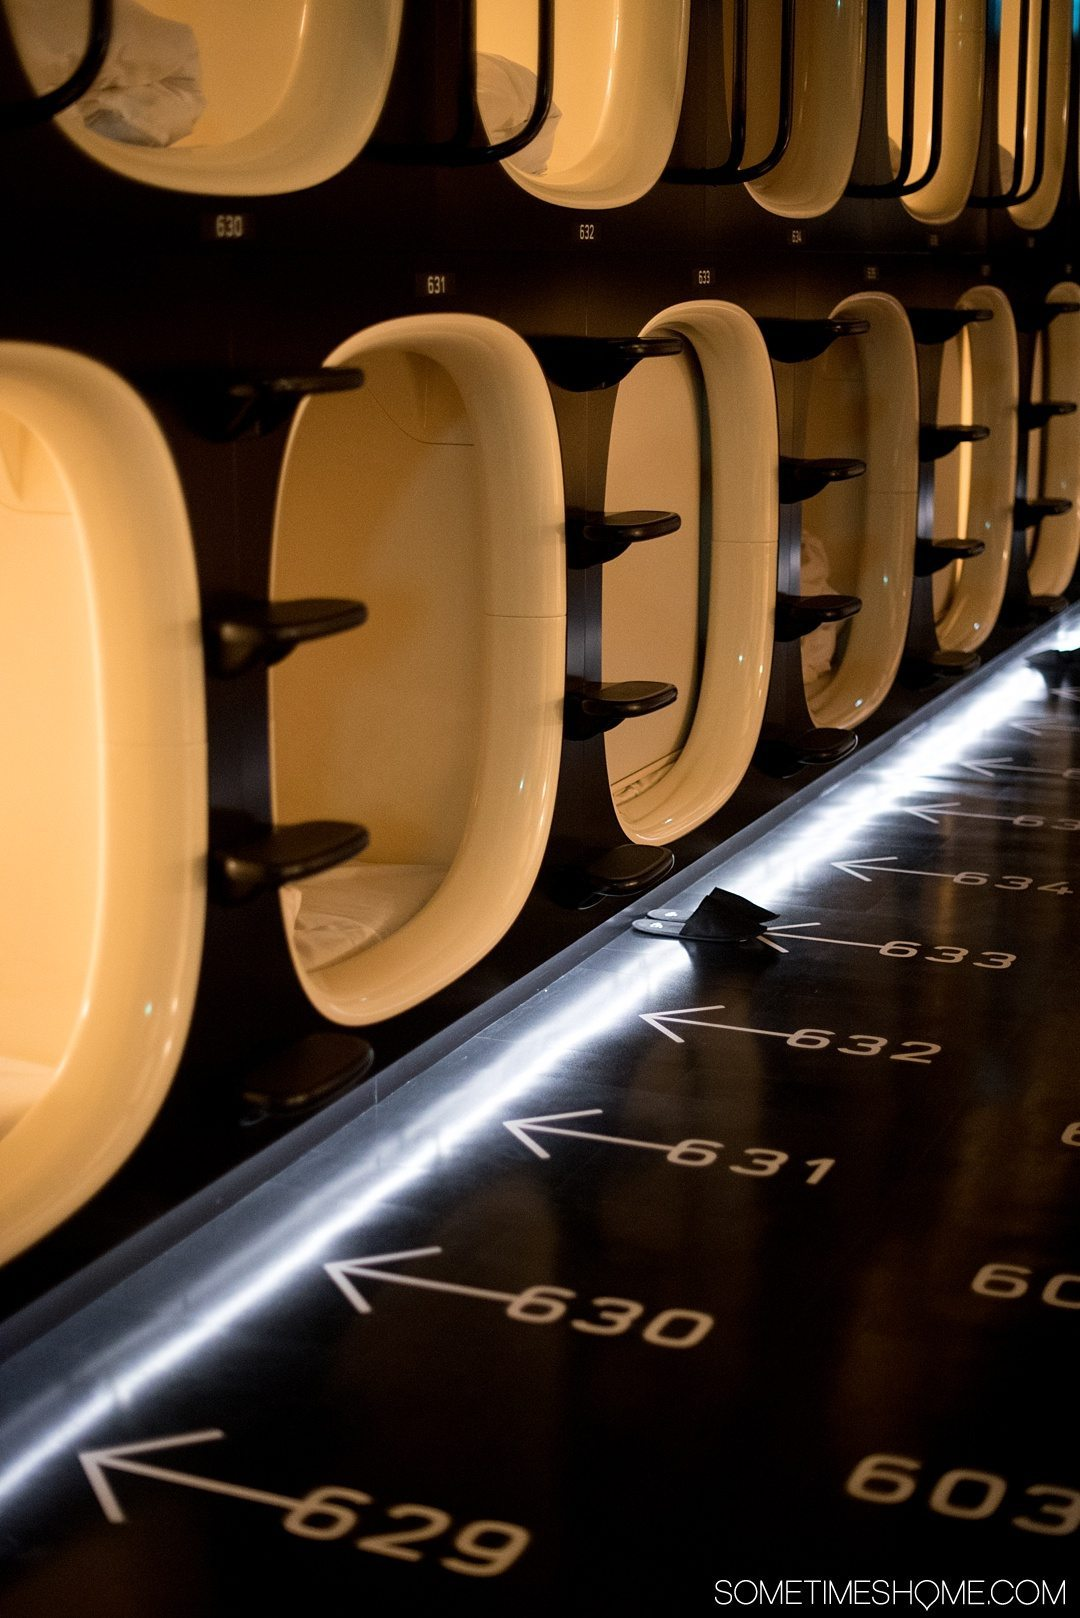 What It's Like to Stay in 9 Hours capsule hotel in Shinjuku Japan by Sometimes Home travel site. A look inside a luxury capsule pod hotel in this great neighborhood of Tokyo. Want to see photos and FAQs answered? Click through to feed your curiosity about this affordable accommodation option in one of the most popular cities in the world. #capsulehotel #tokyohotel #shinjukujapan